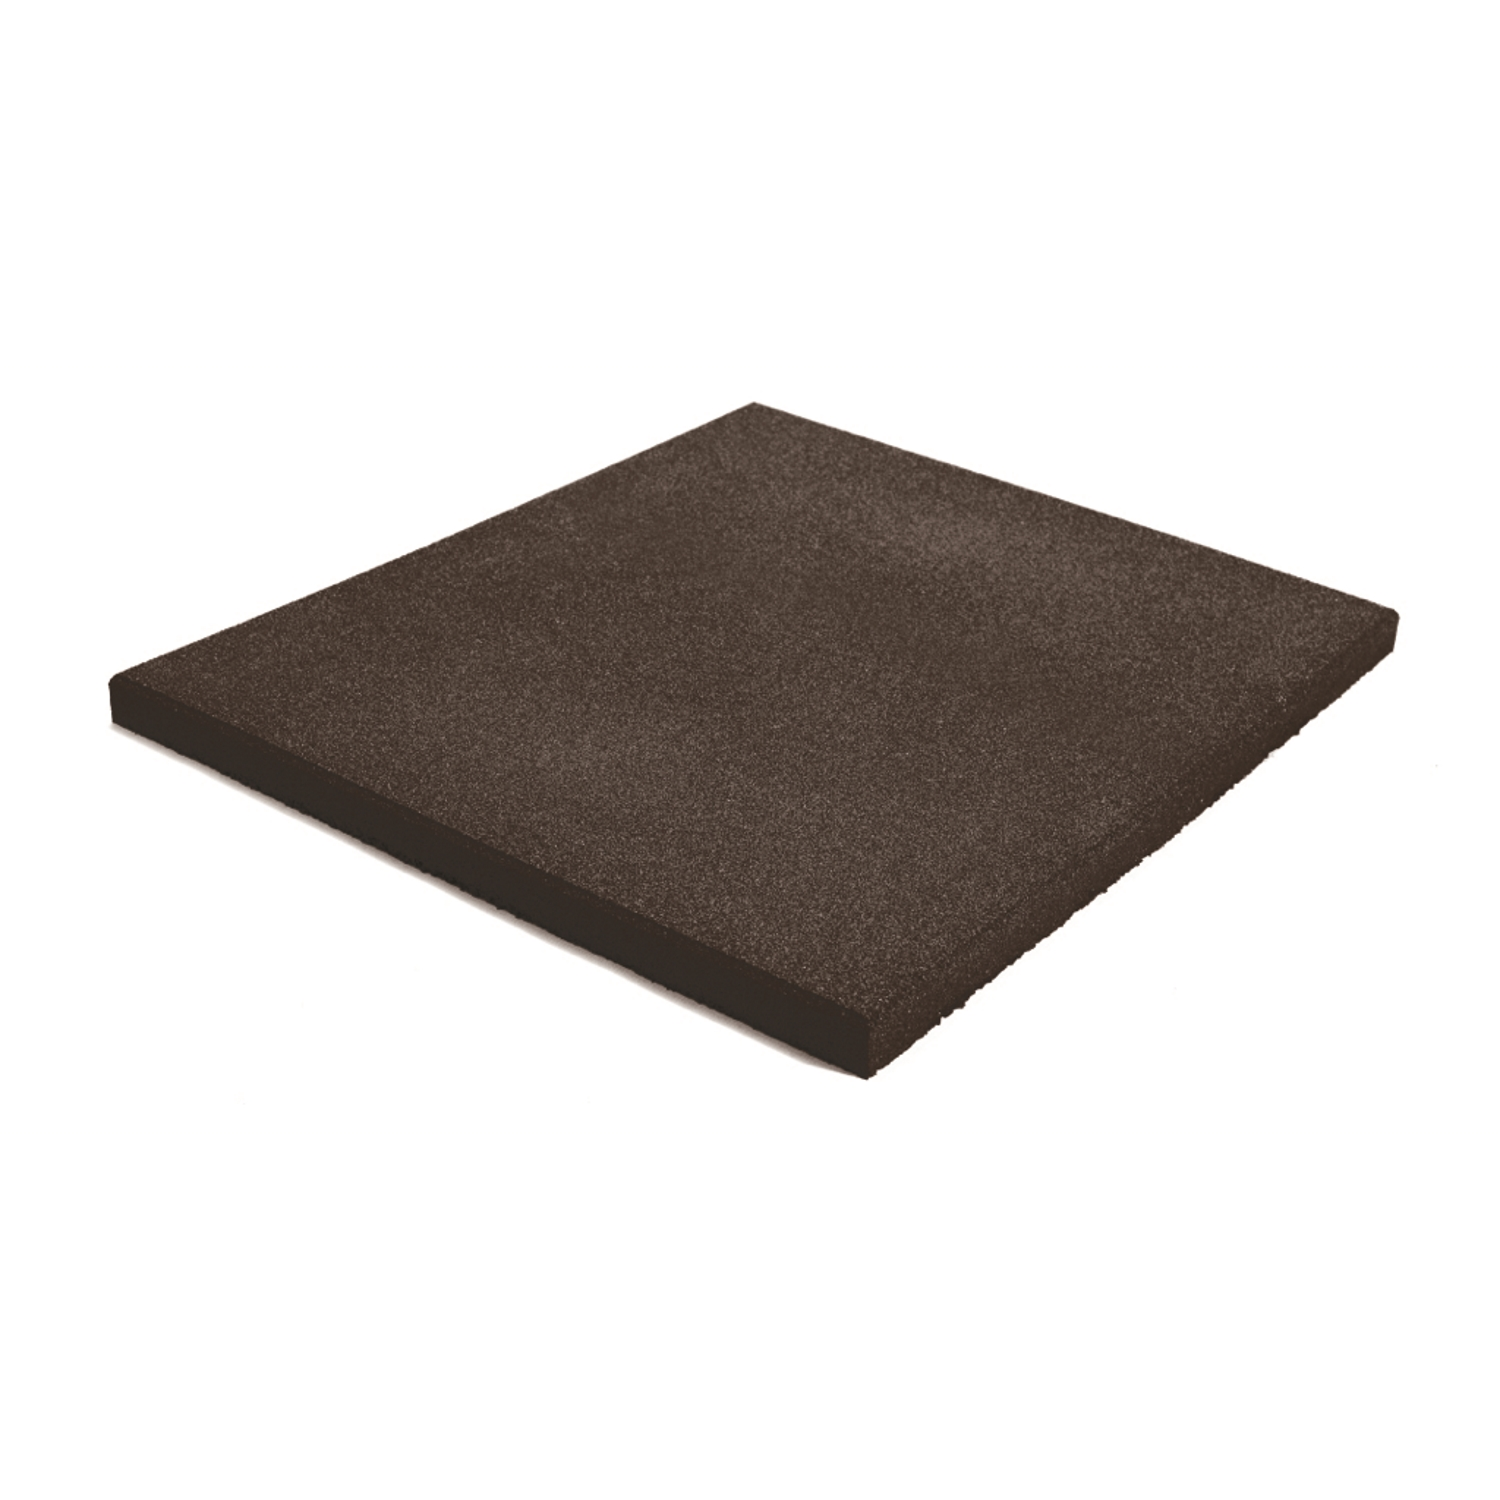 Jordan Activ Flooring (30mm) - Black Ramp Edge